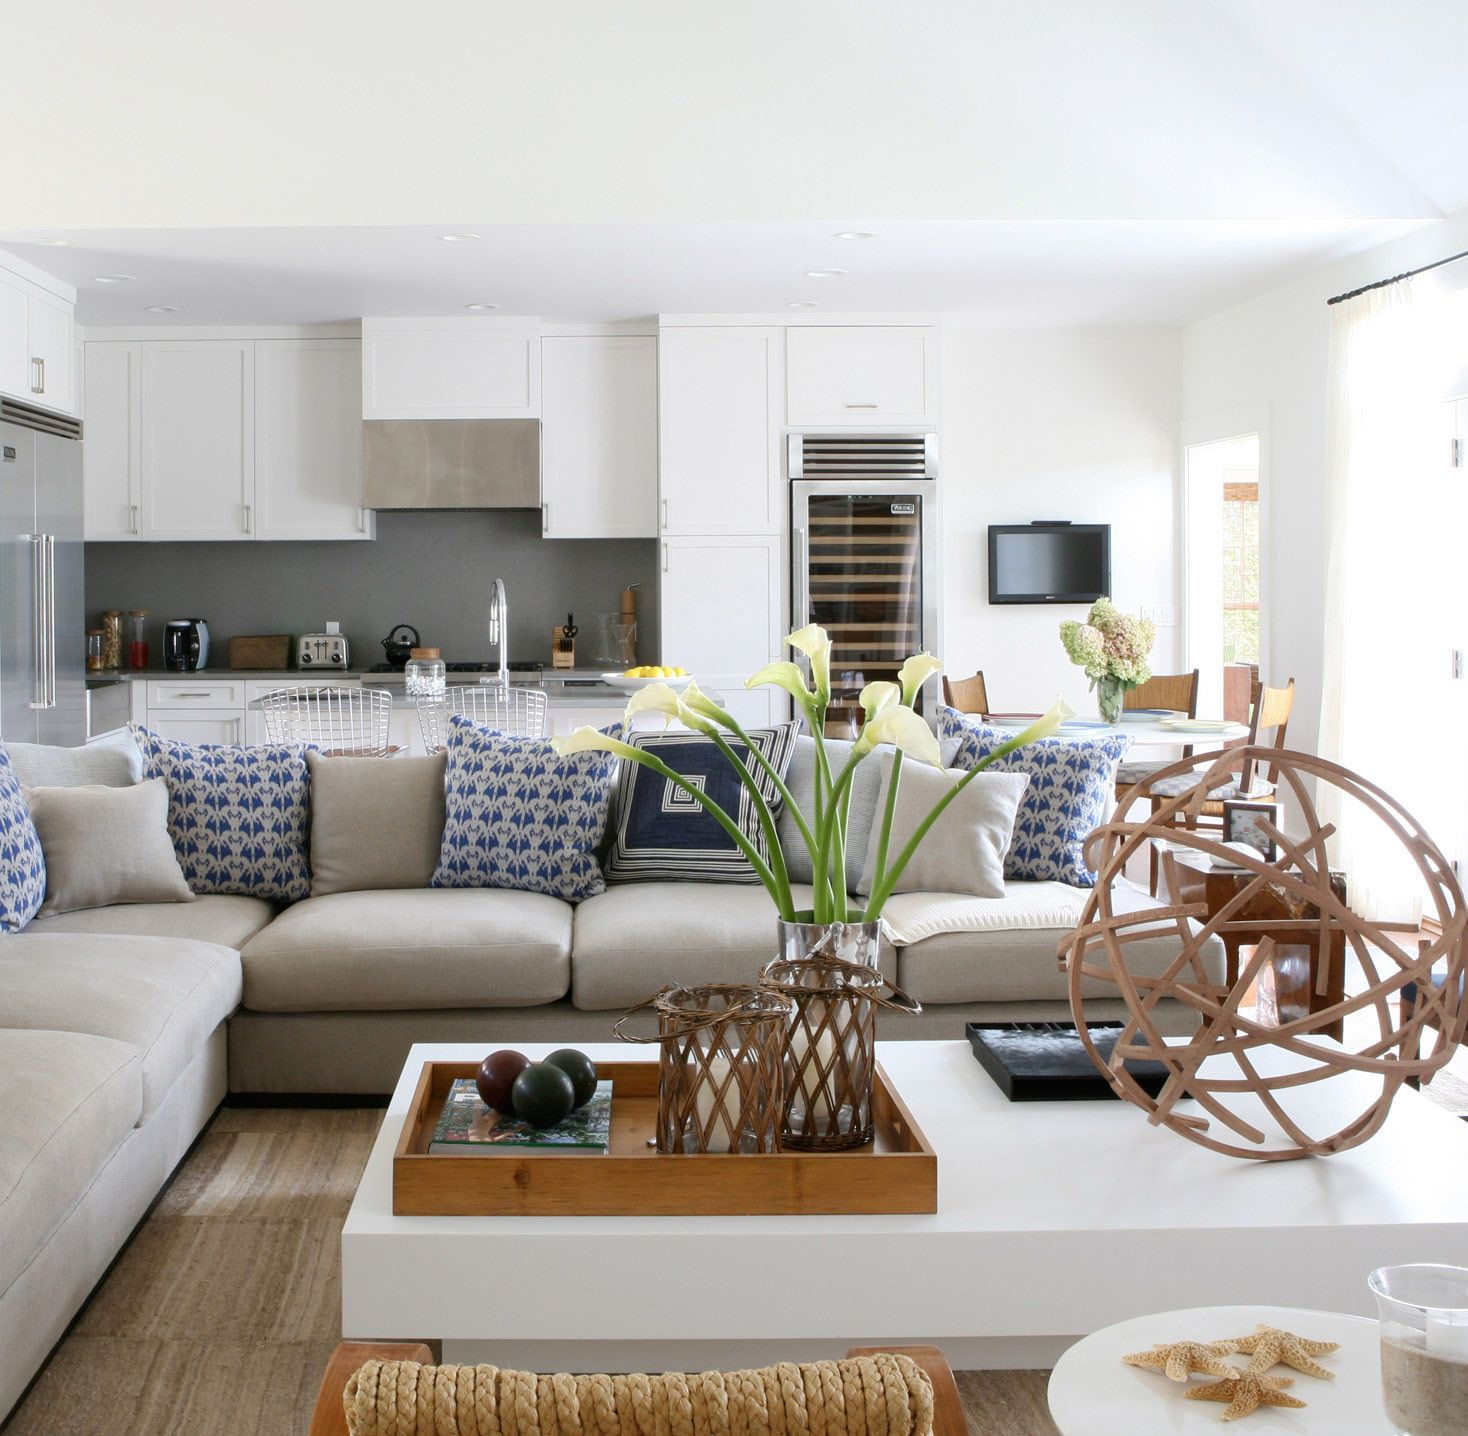 CHIC COASTAL LIVING: Chic Bridgehampton Beach House  Coastal